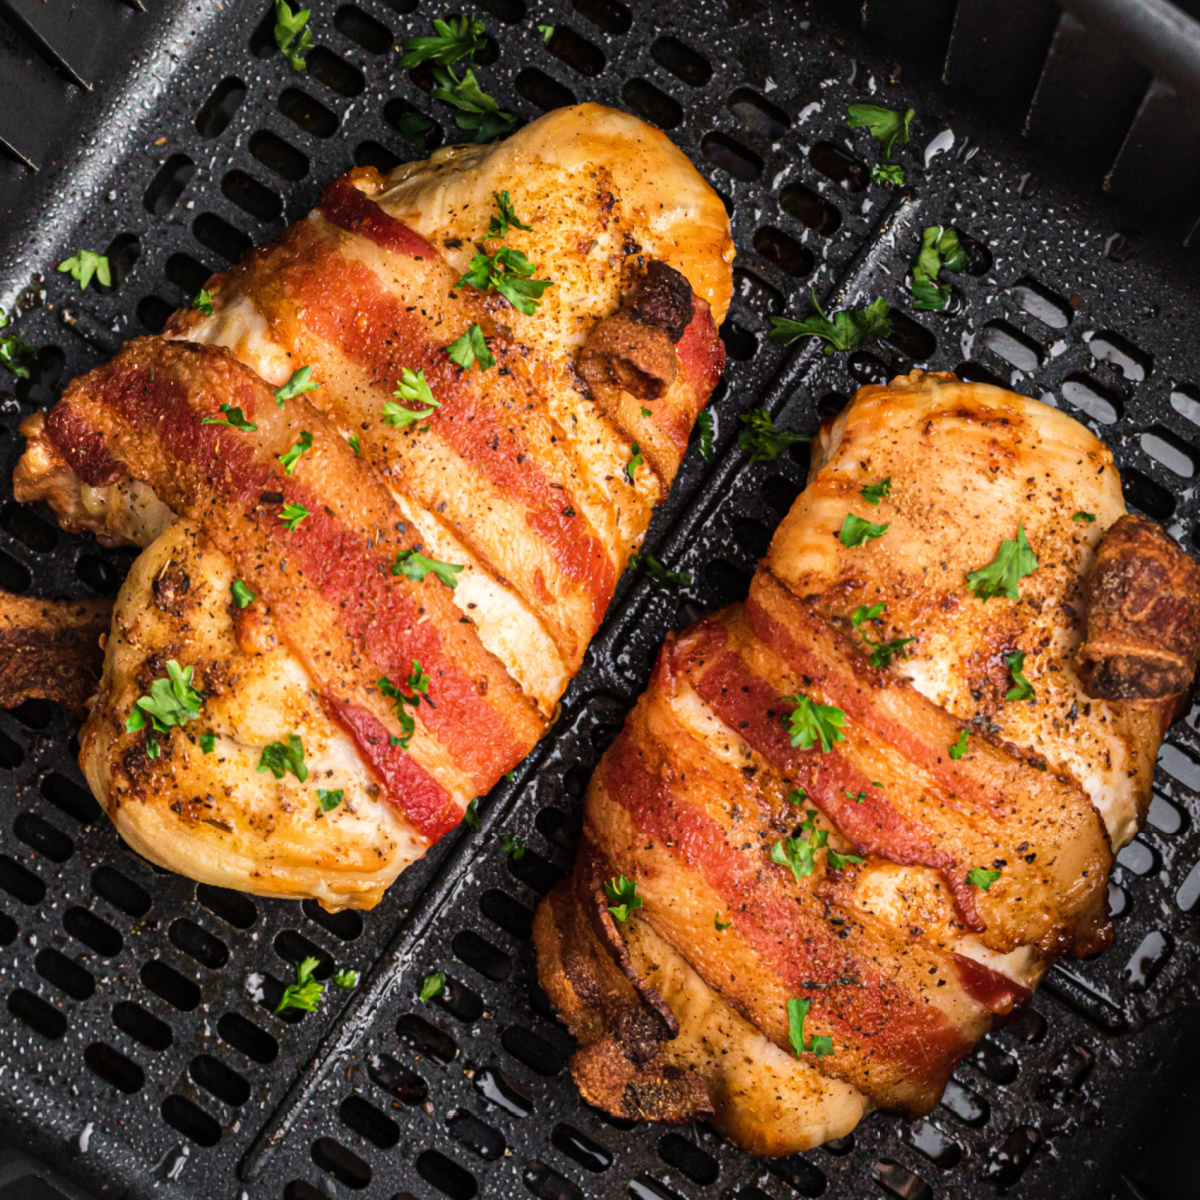 bacon wrapped chicken breasts in the air fryer basket